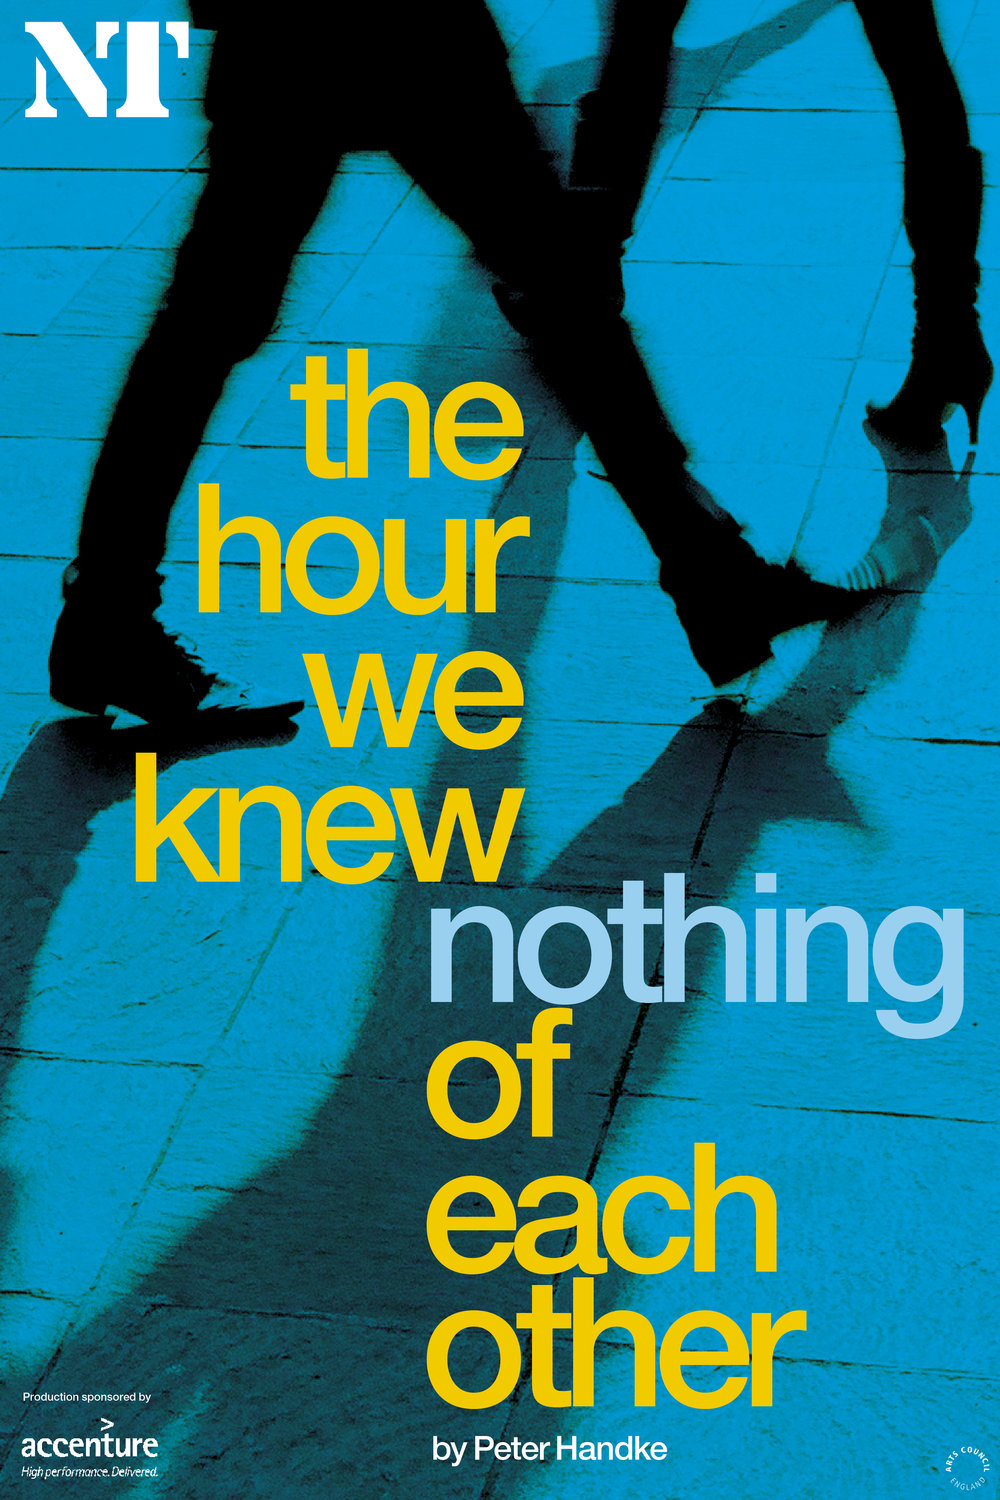 Poster design by Michael Mayhew, Photograph by Stephen Cummiskey (2008)